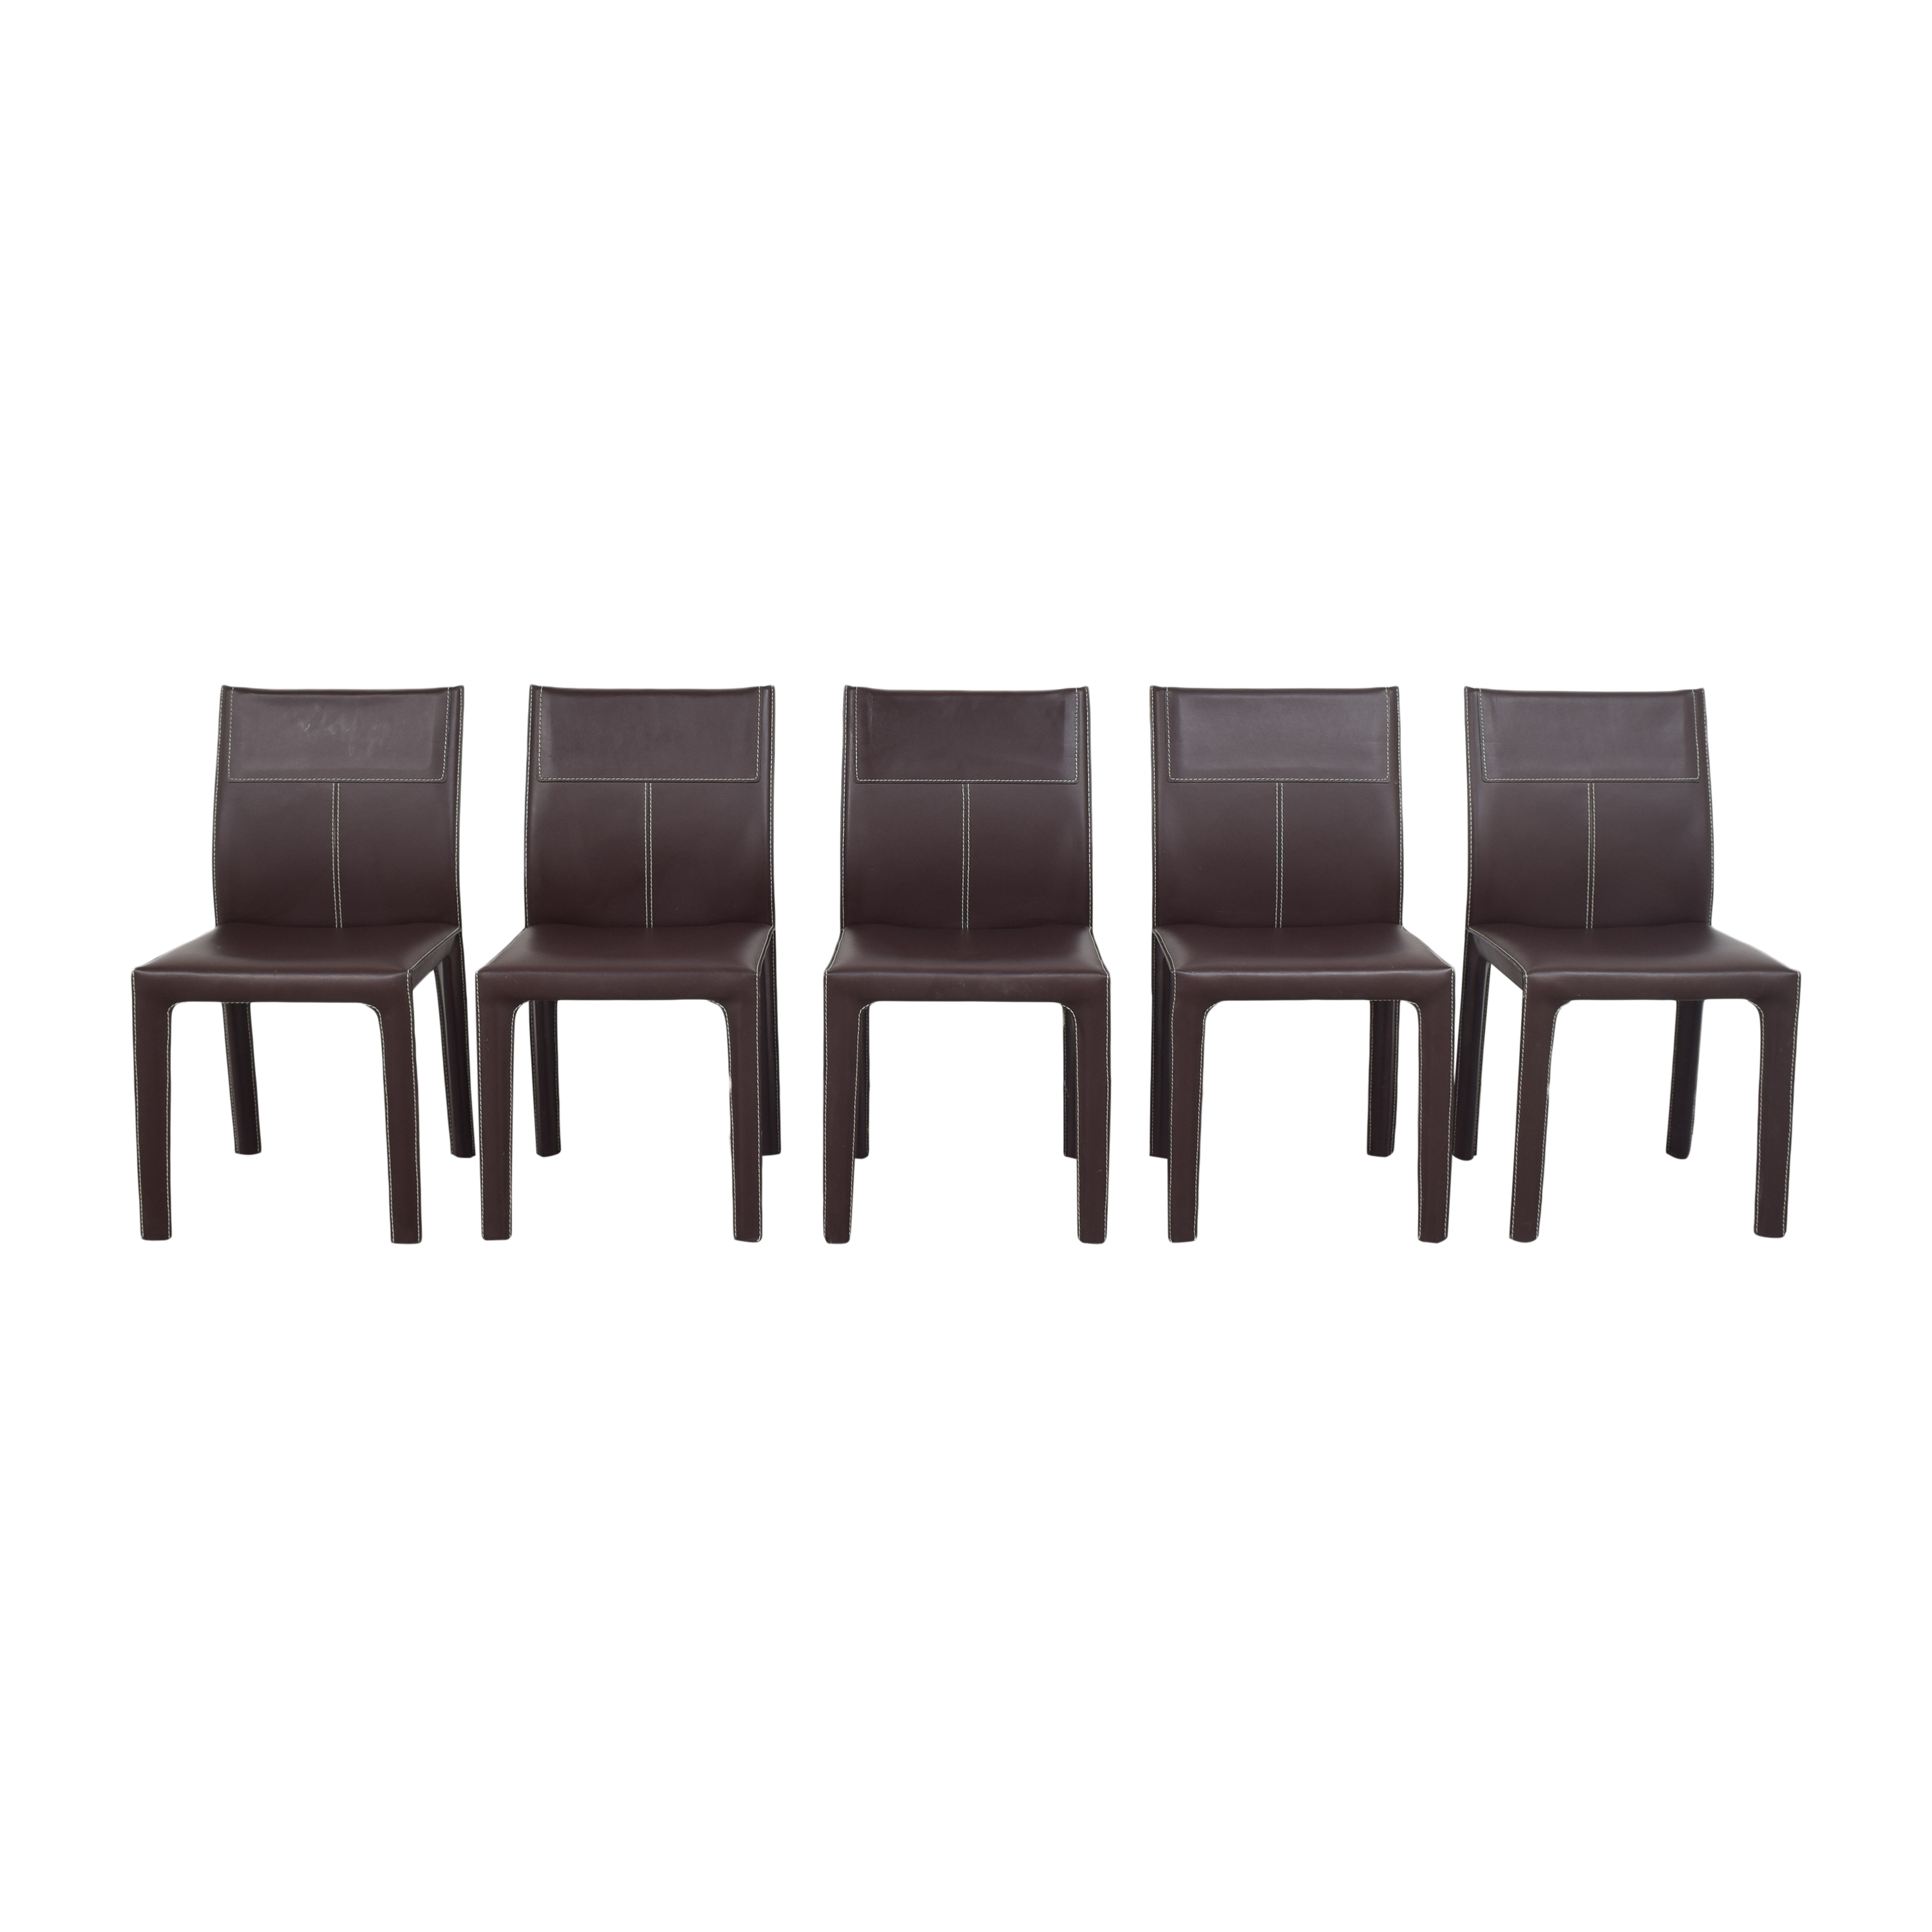 Italstudio Italstudio for Roche Bobois Contrast Stitched Dining Chairs Chairs